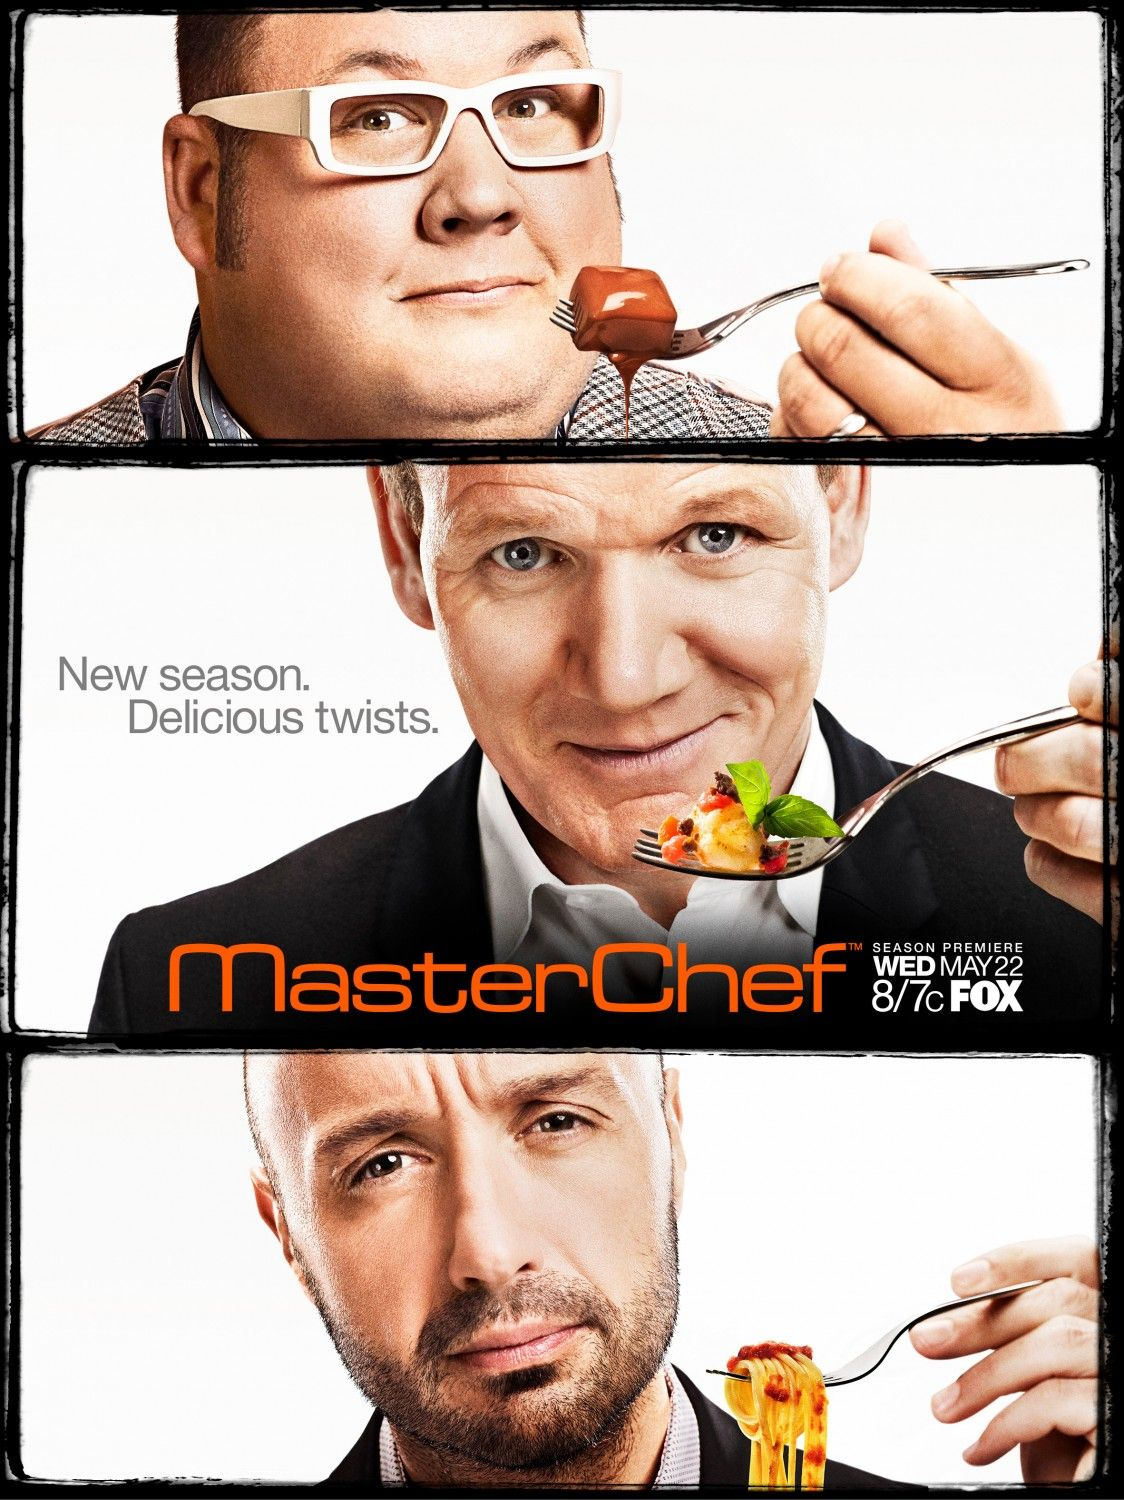 Masterchef Season 4 Episode 1 (s04e01) Auditions #1/Auditions #2